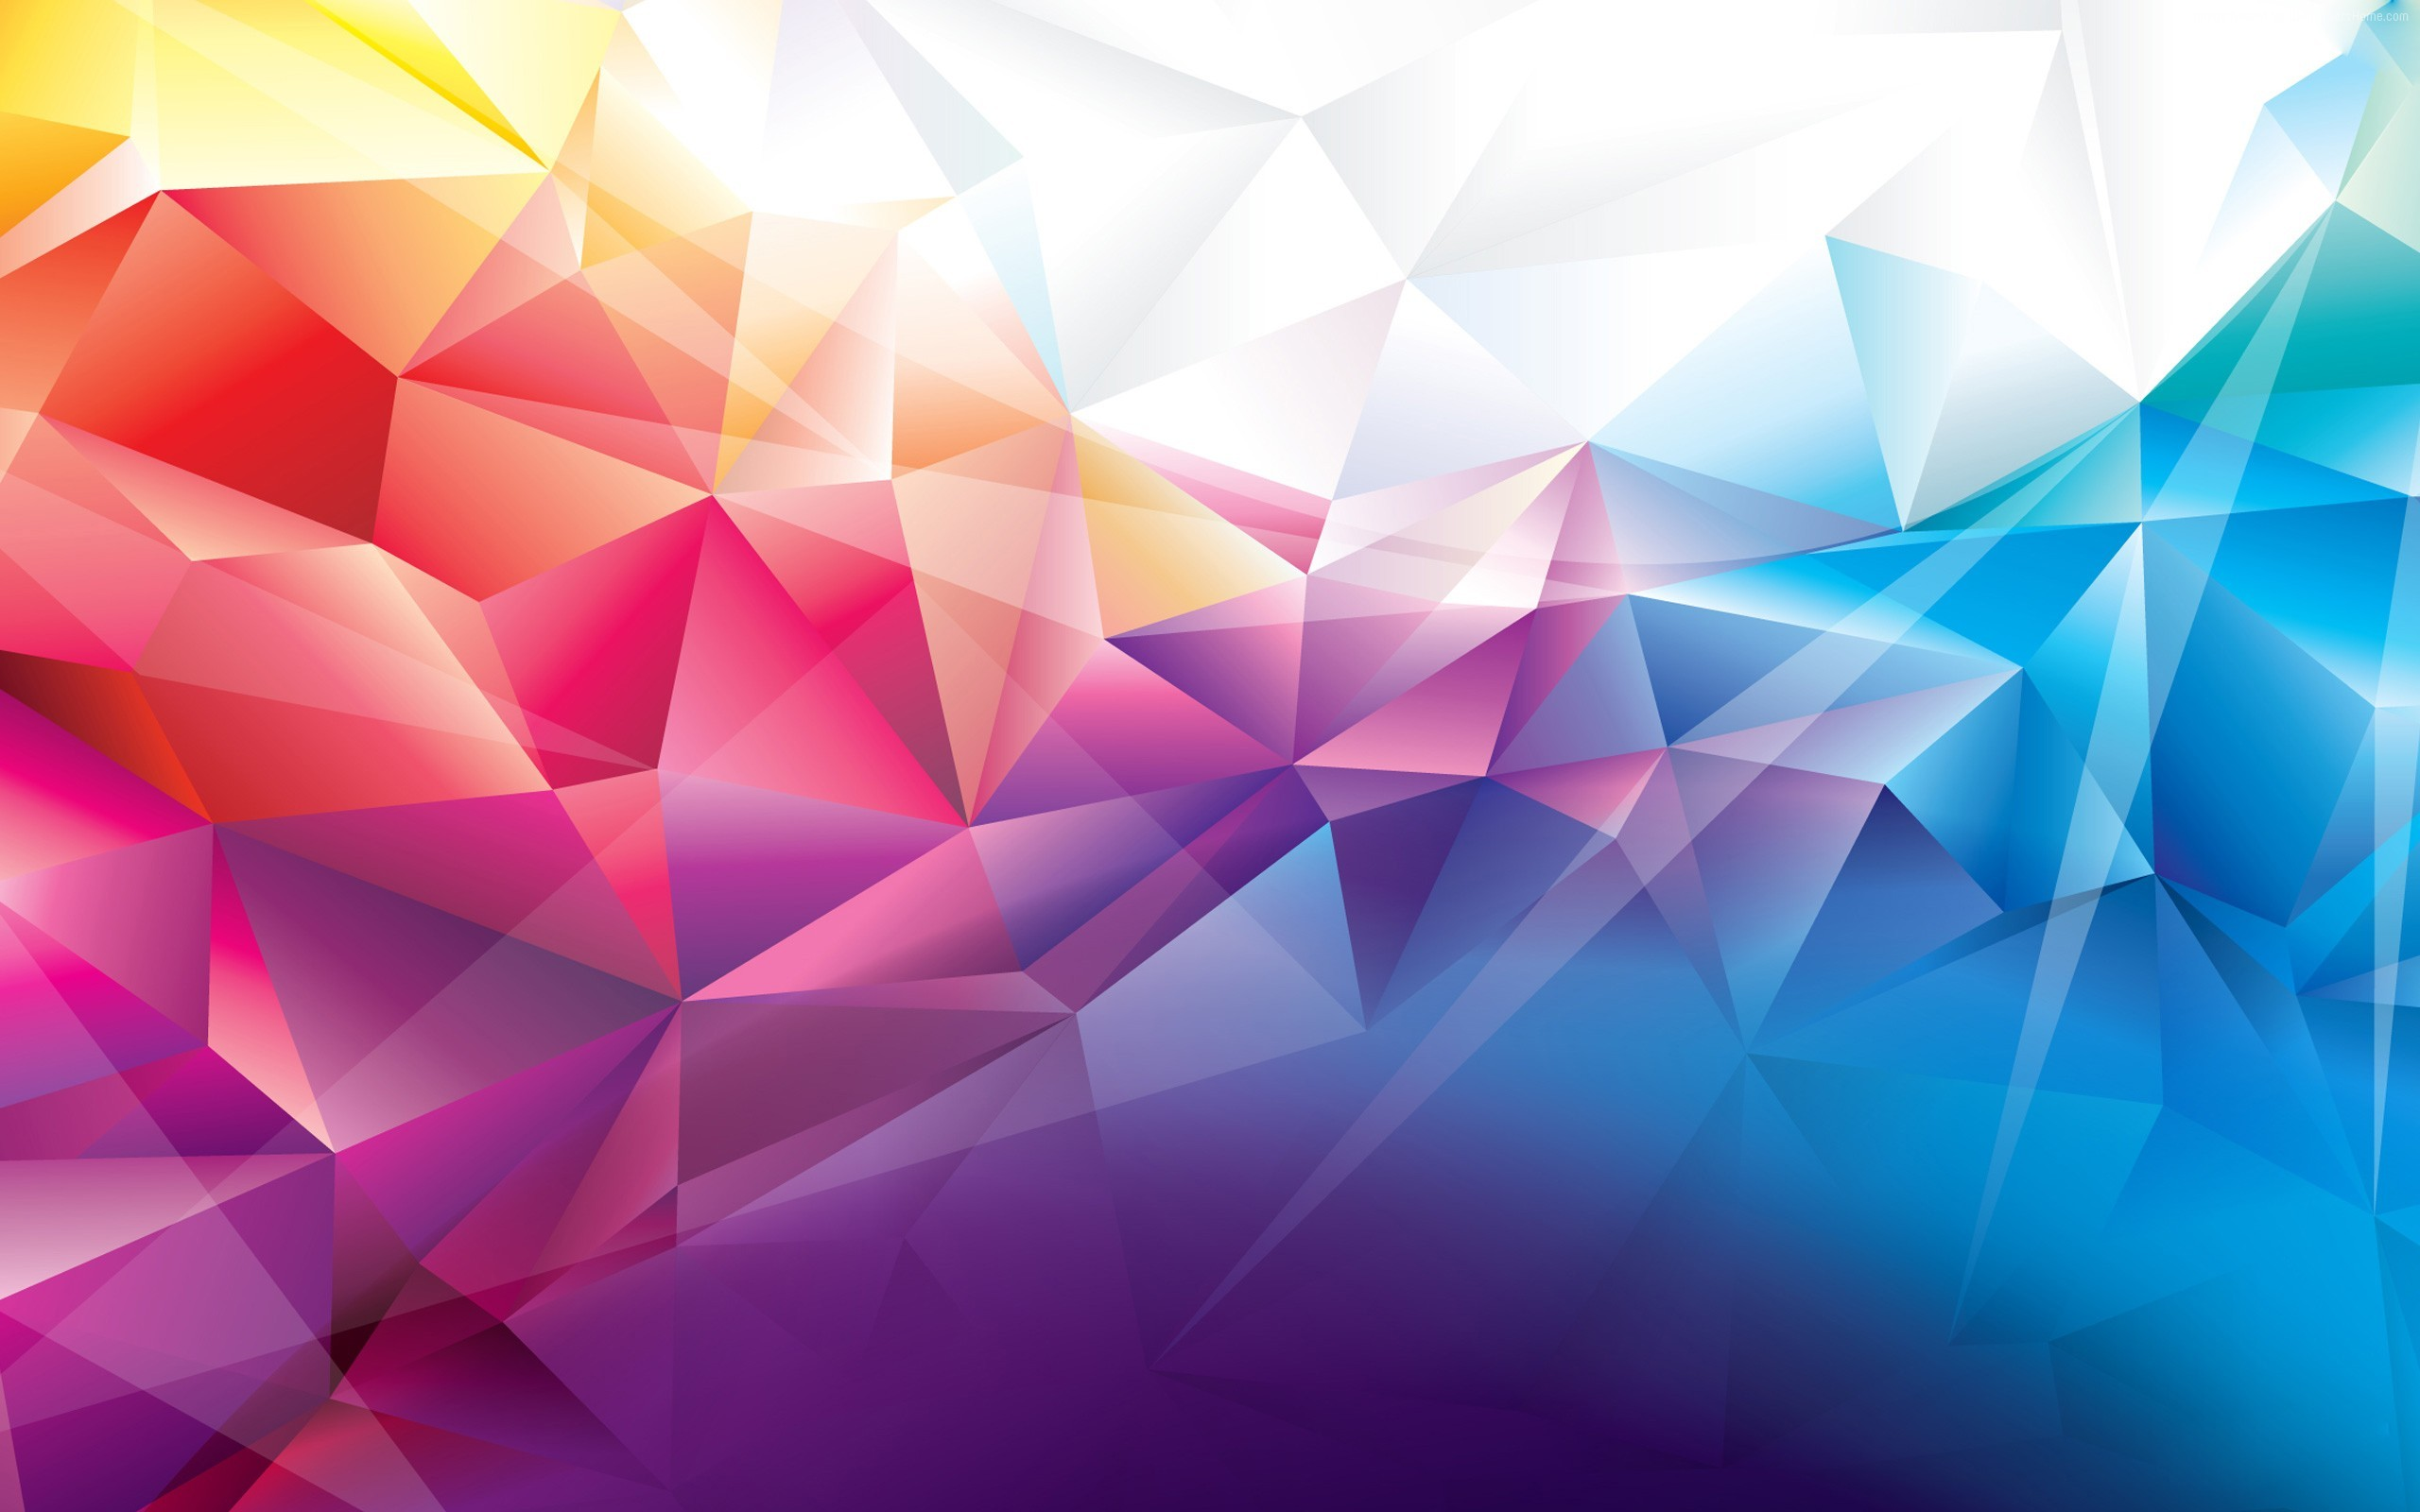 2560x1600 Wallpaper polygon, 4k, HD wallpaper, orange, red, blue, background,  pattern, Abstract #225. Bring some HD wallpapers into your life with  WallpapersHome!